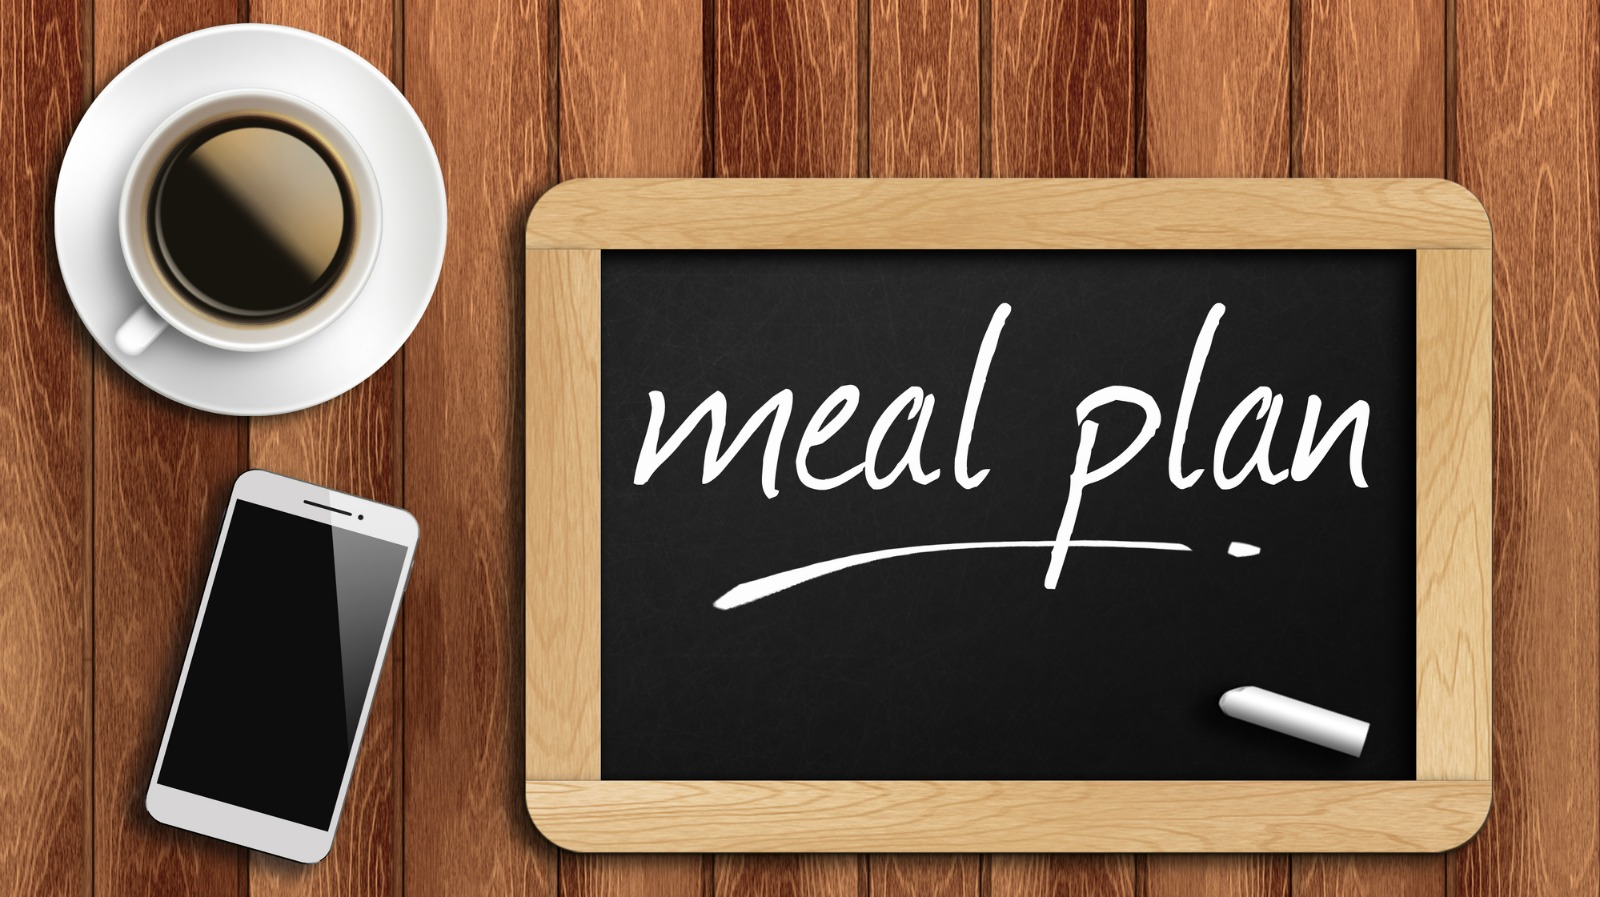 The coffee, phone  and chalkboard with word meal plan